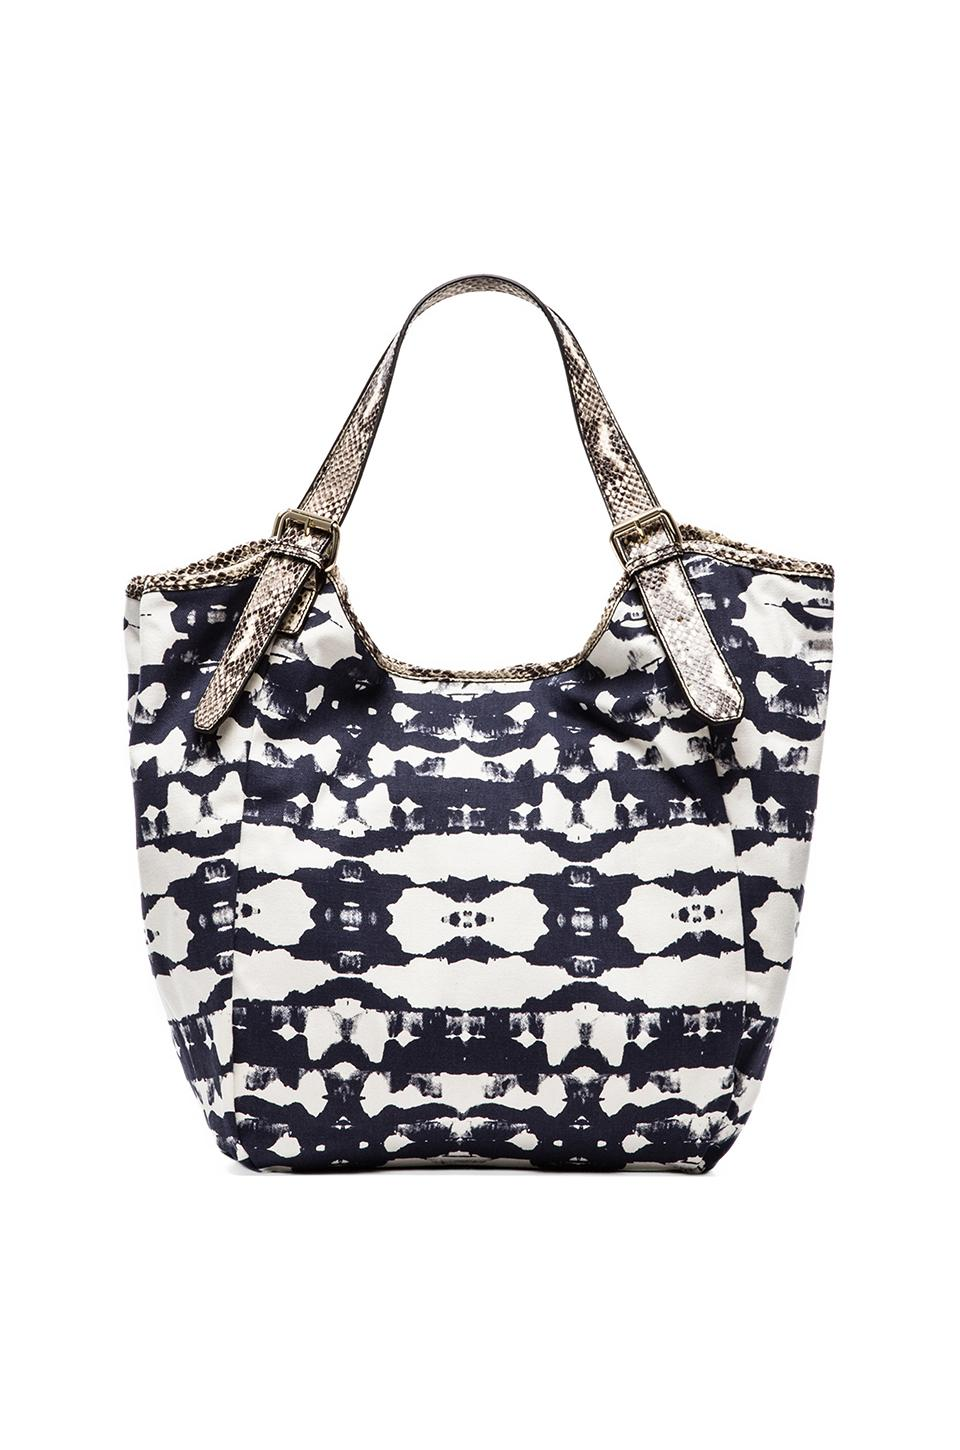 Twelfth Street By Cynthia Vincent Berkley Shoulder Bag in Tie Dye & Python